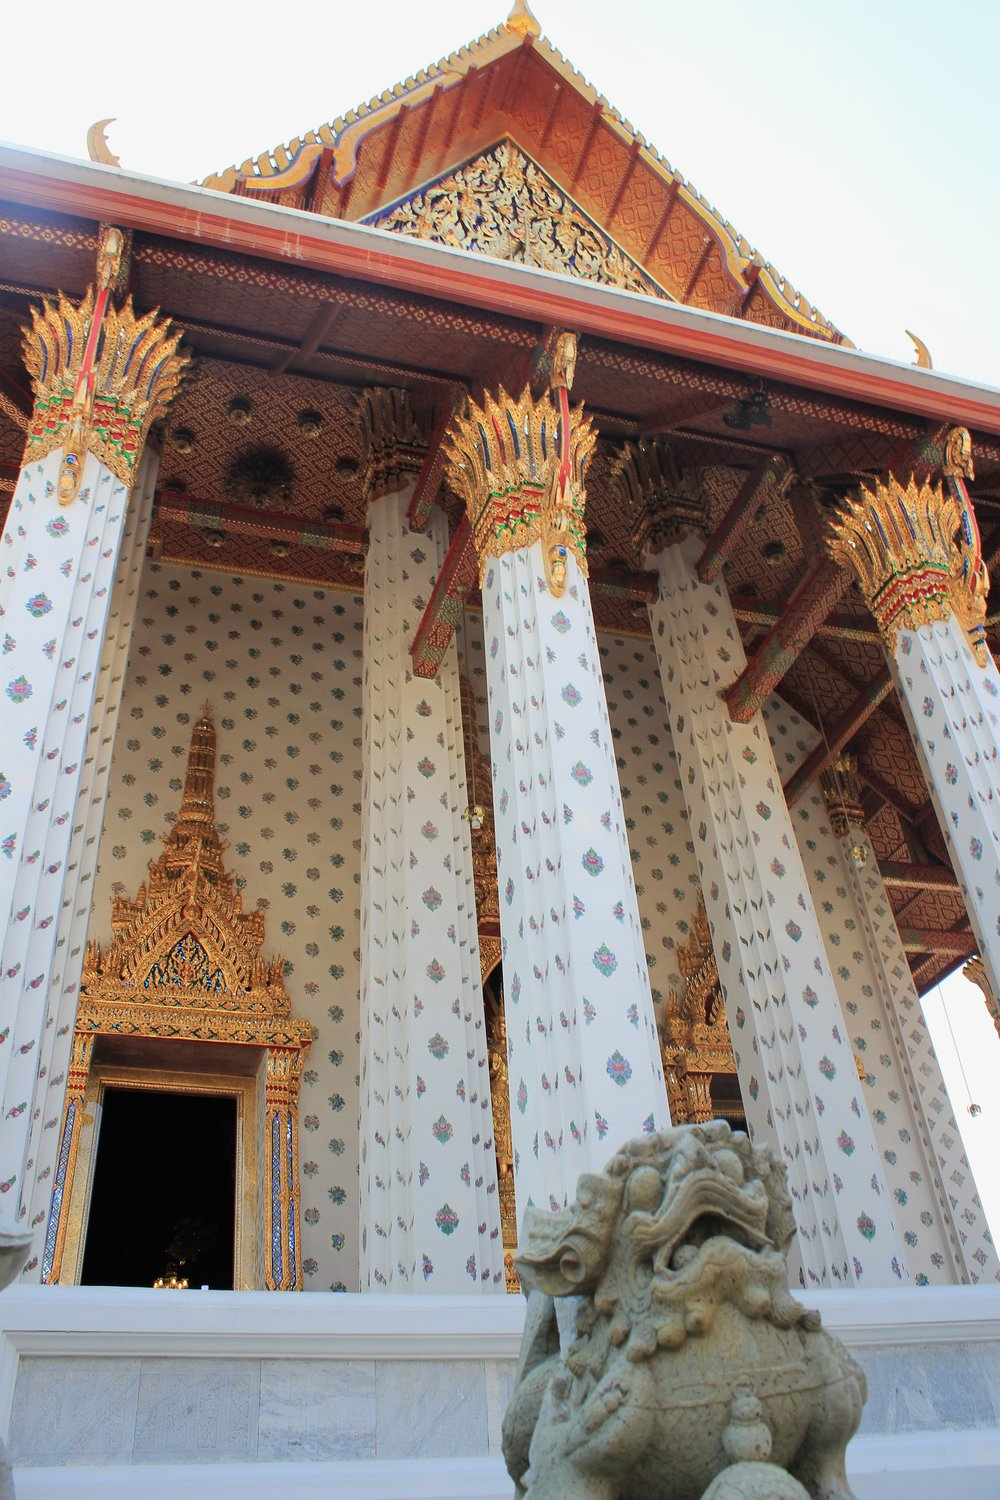 Temples of Thailand - 12 photos to inspire you to visit Thailand